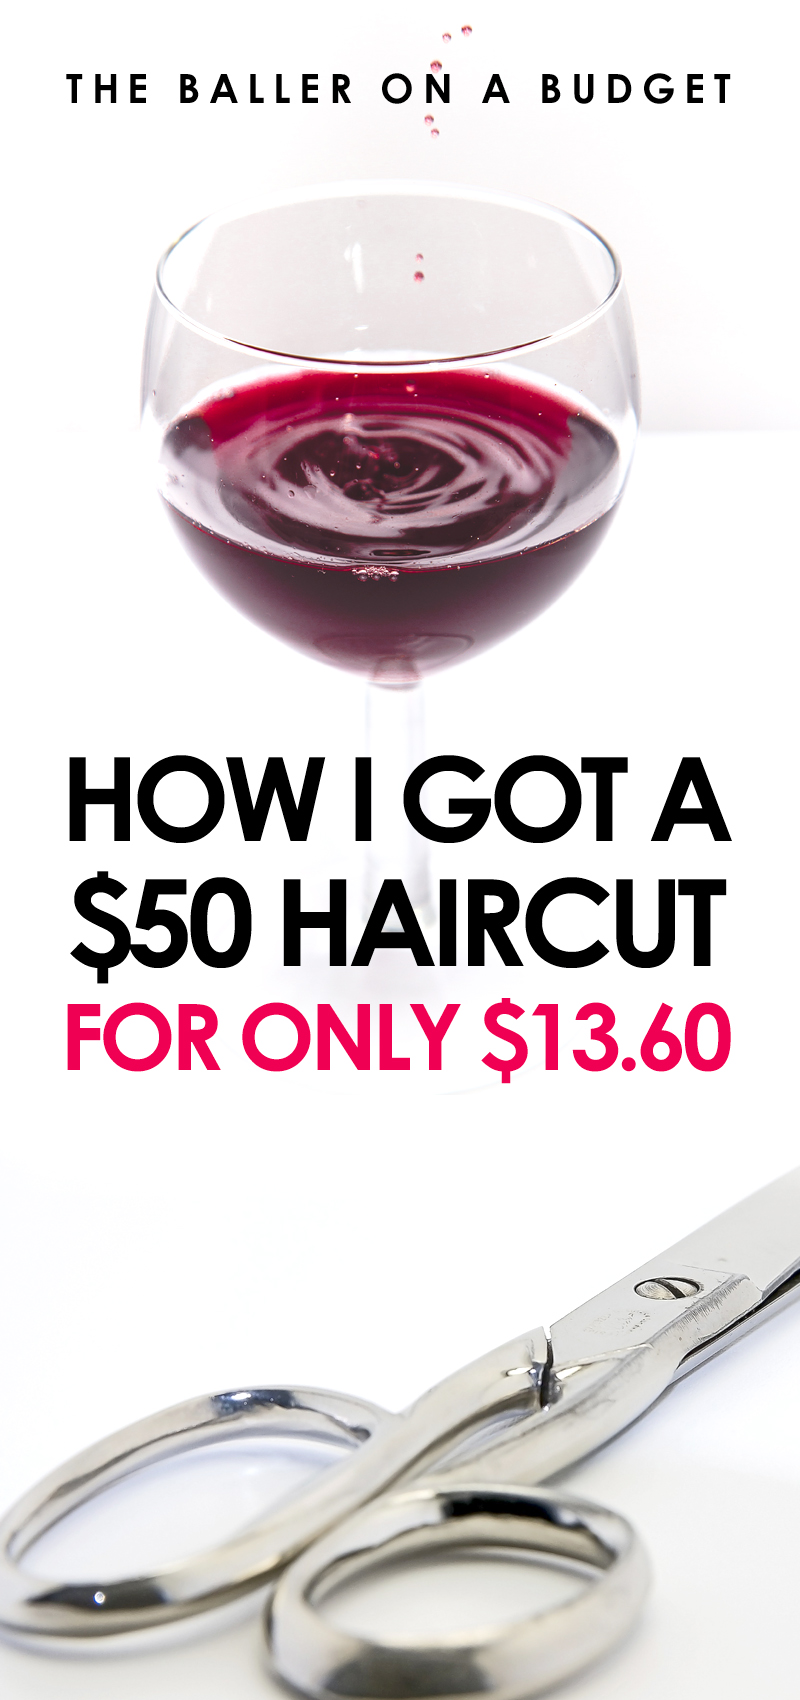 Groupon can get you a great deal on spa treatments! See how I got a $50 haircut for only $13.60. - www.theballeronabudget.com